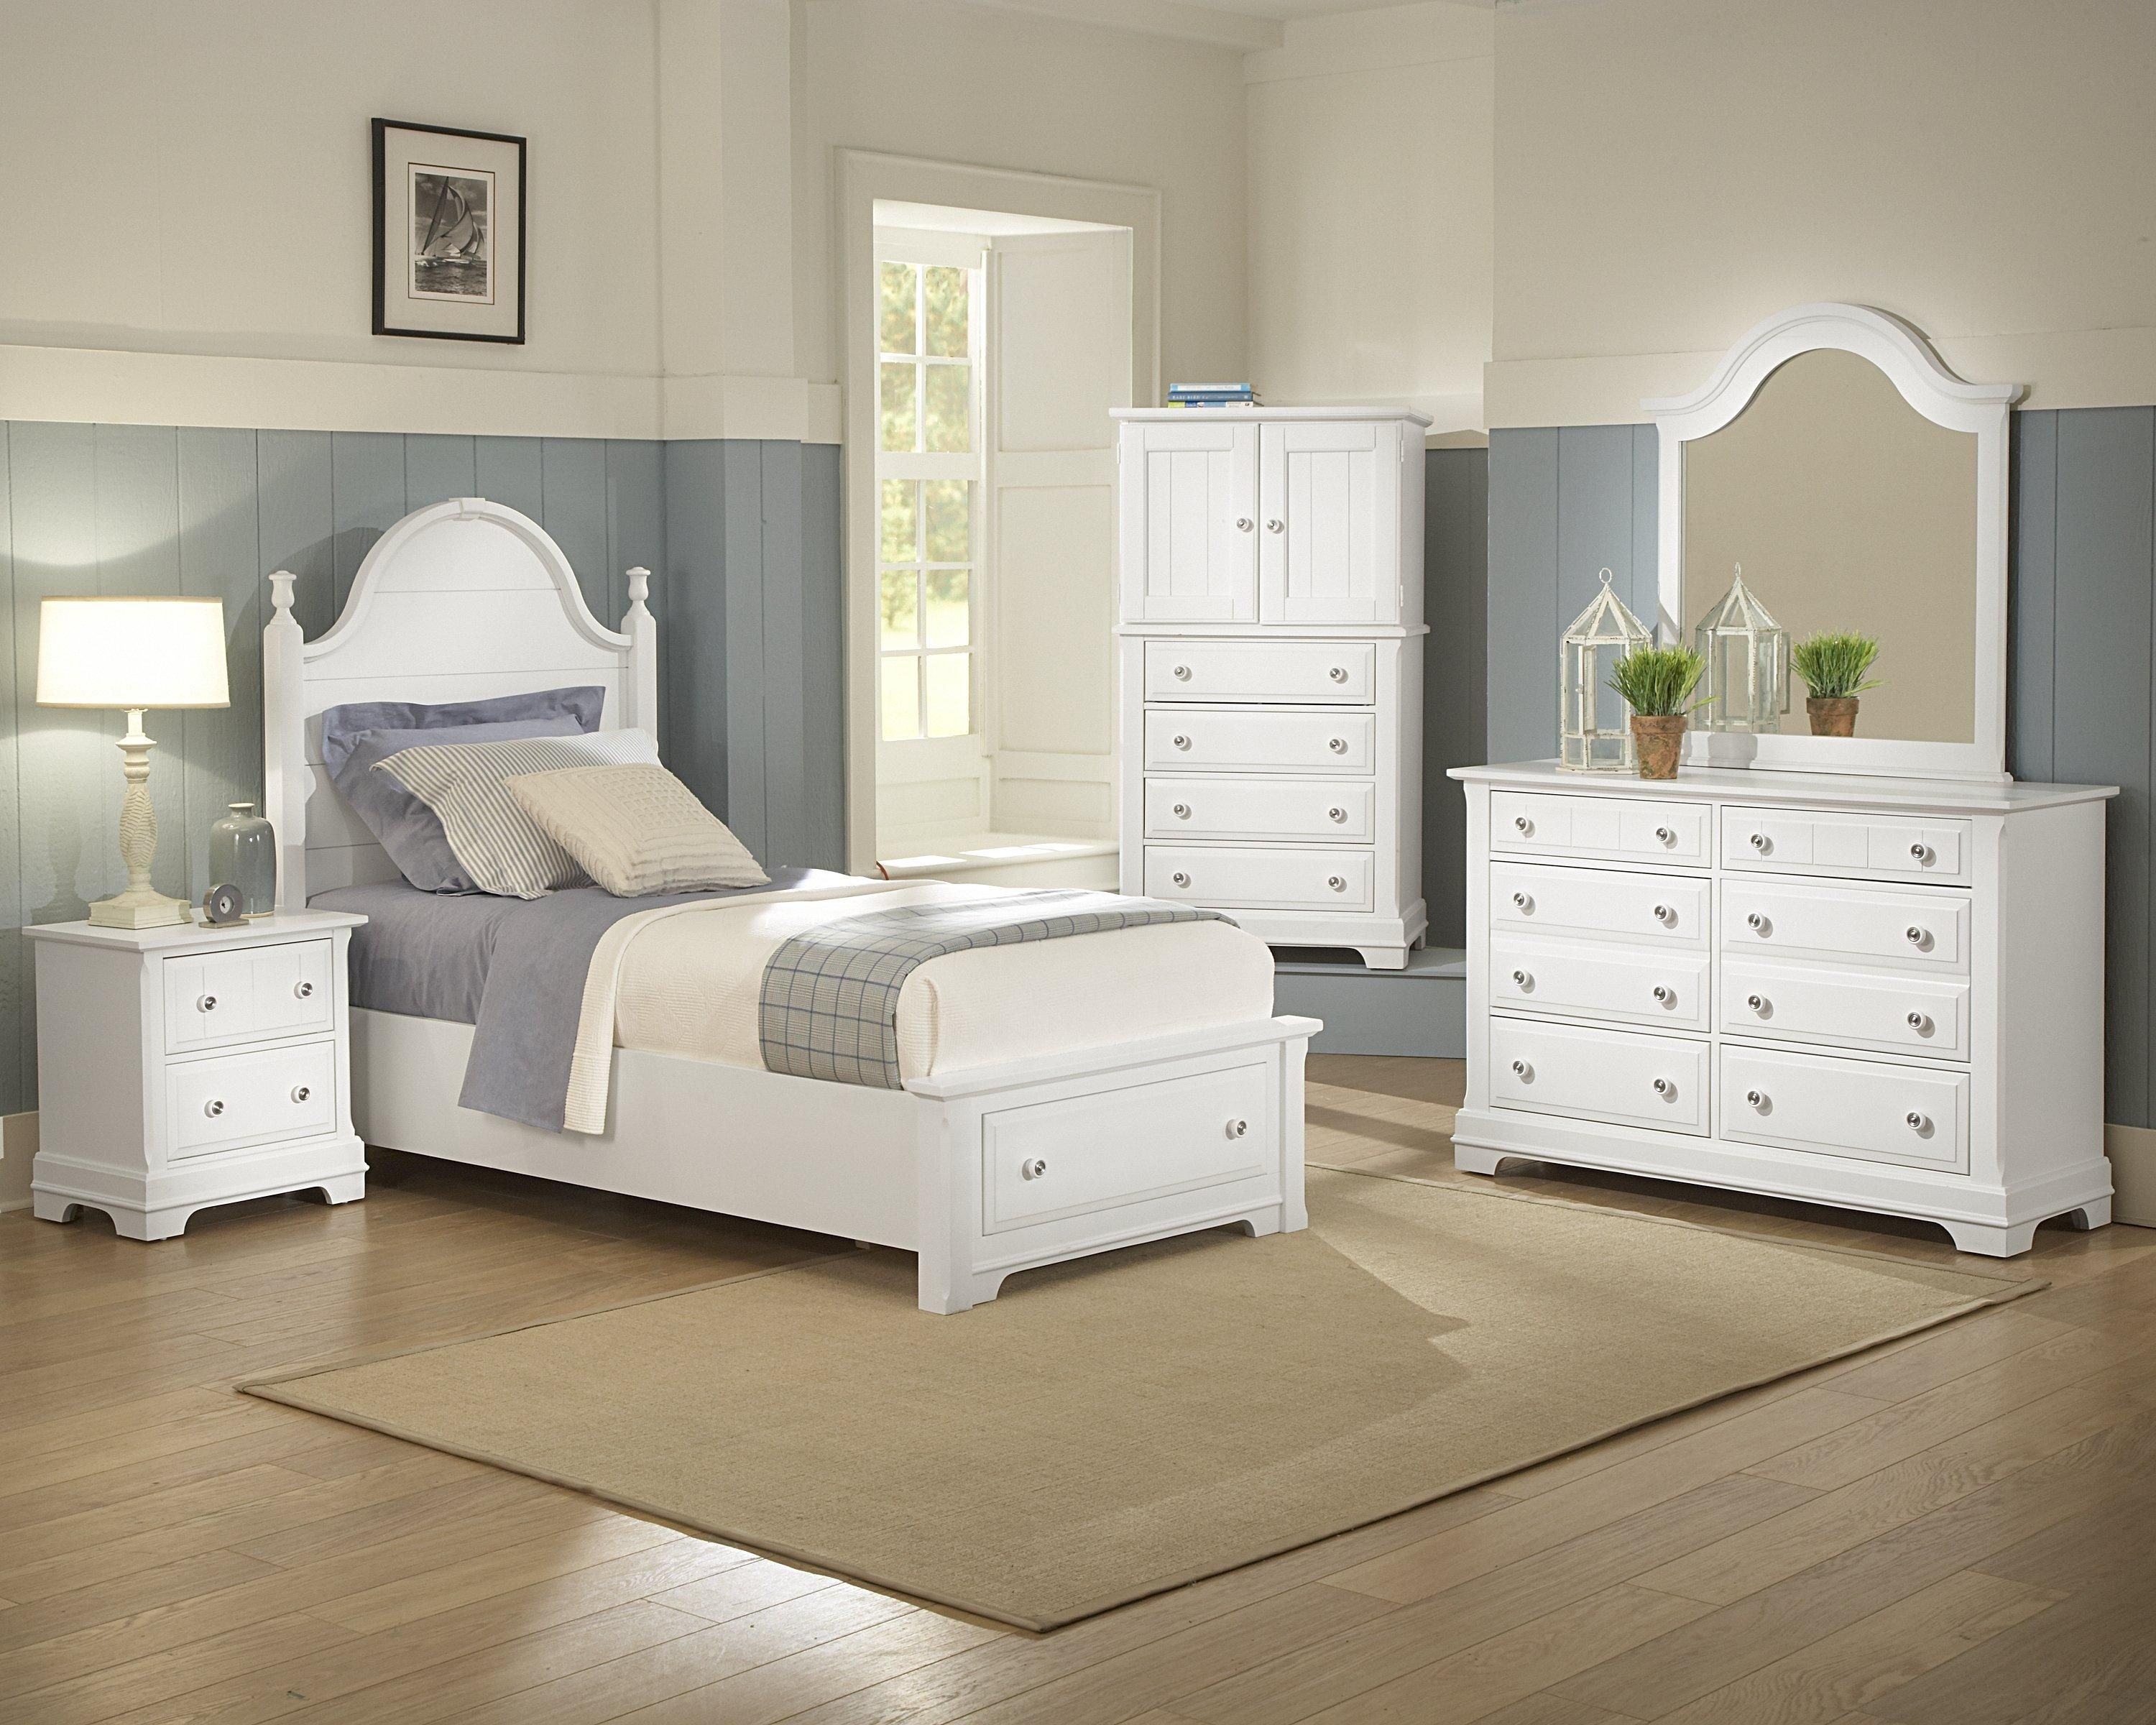 images about youth bedrooms on pinterest furniture twin - Jessica Mcclintock Bedroom Furniture